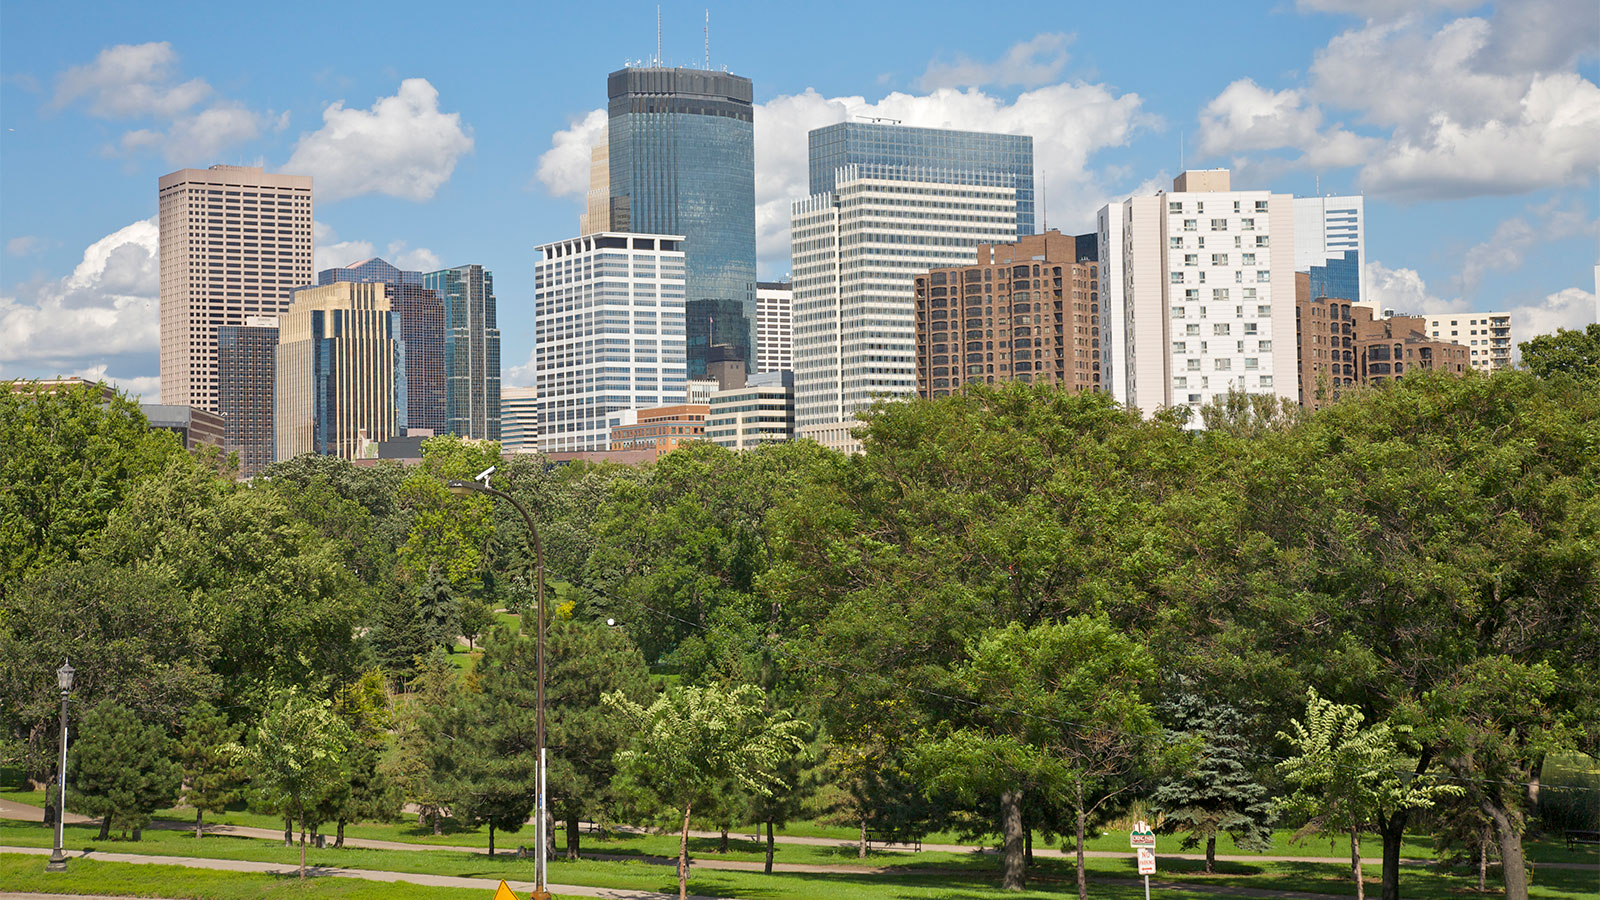 A picture of Minneapolis skyline featuring a park in front of downtown skyscrapers.